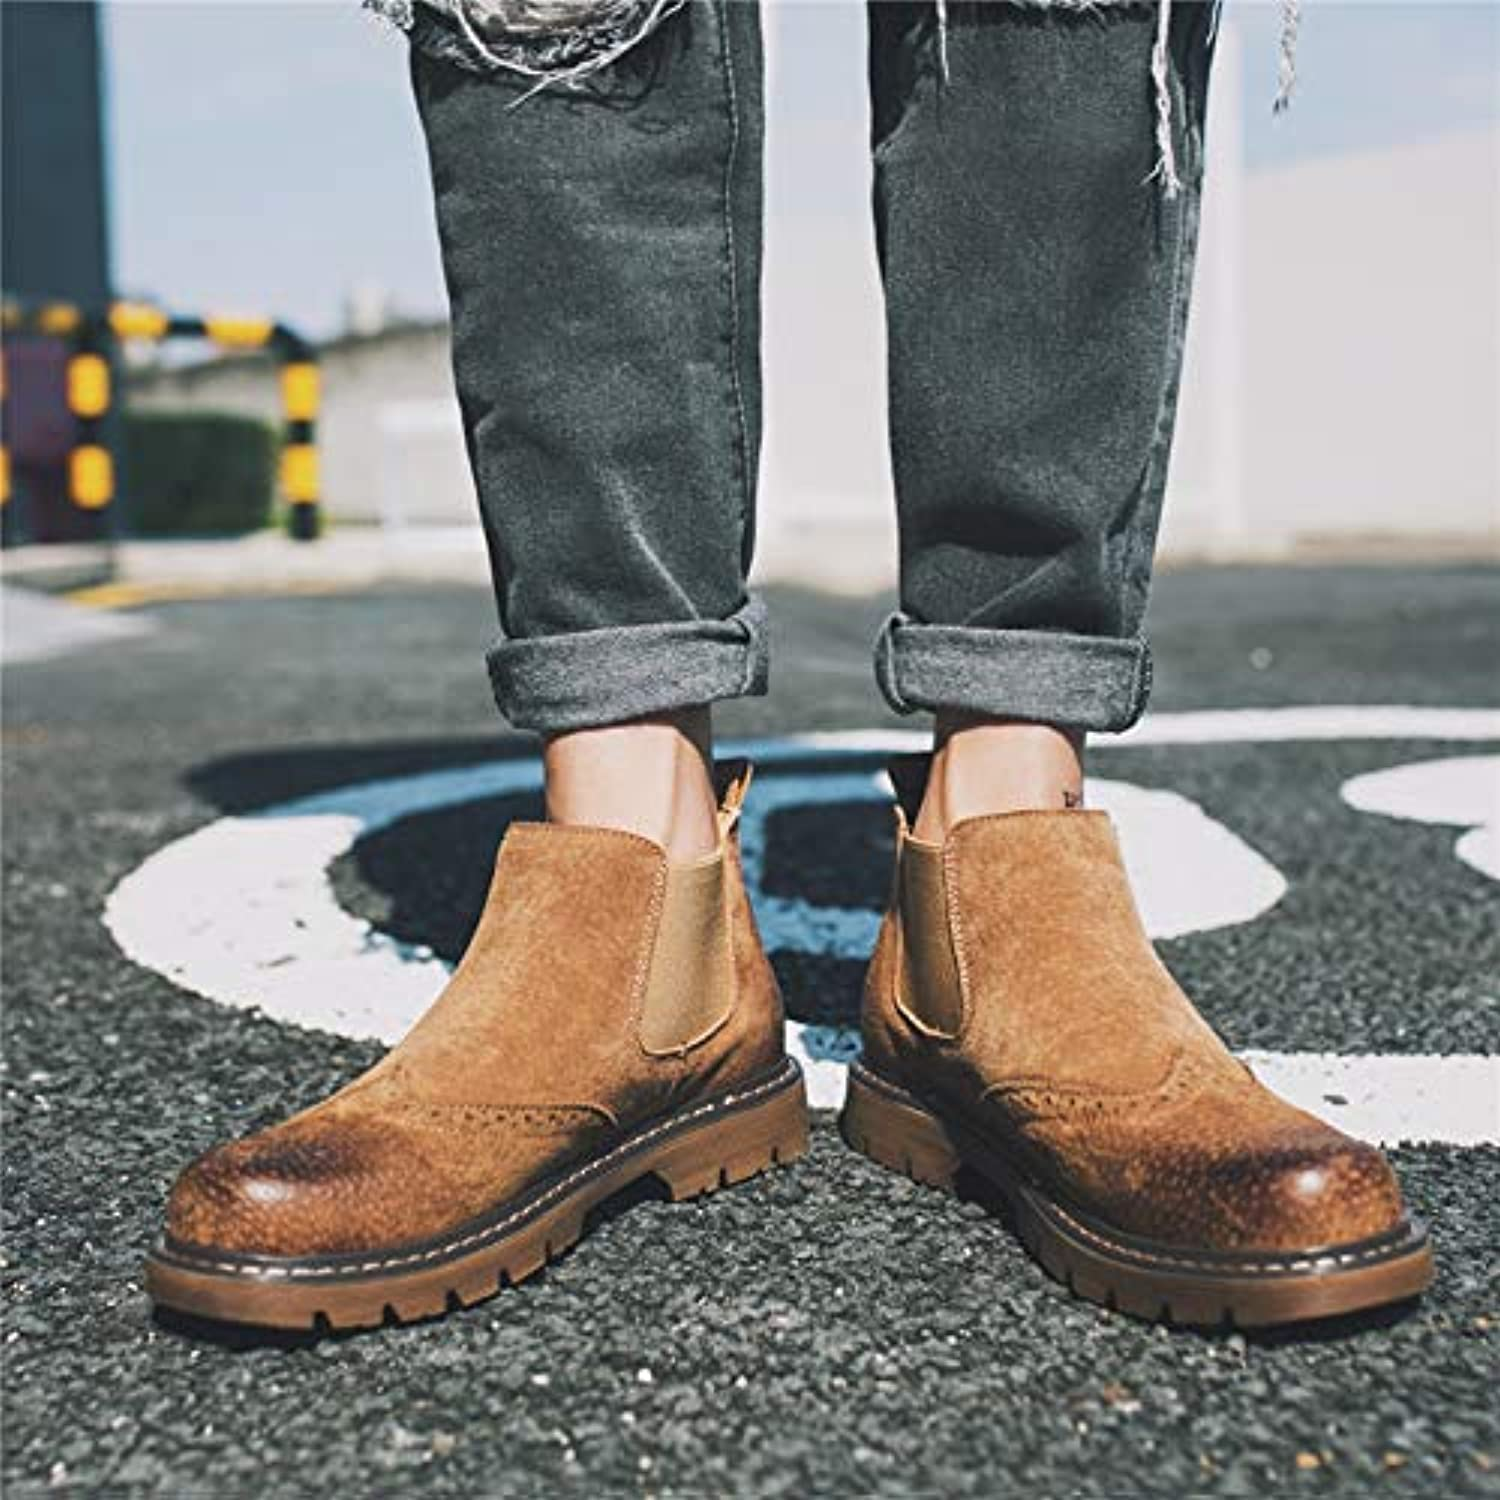 Shukun Men's boots Pu Retro High shoes Men'S shoes Lazy Casual shoes Martin Boots